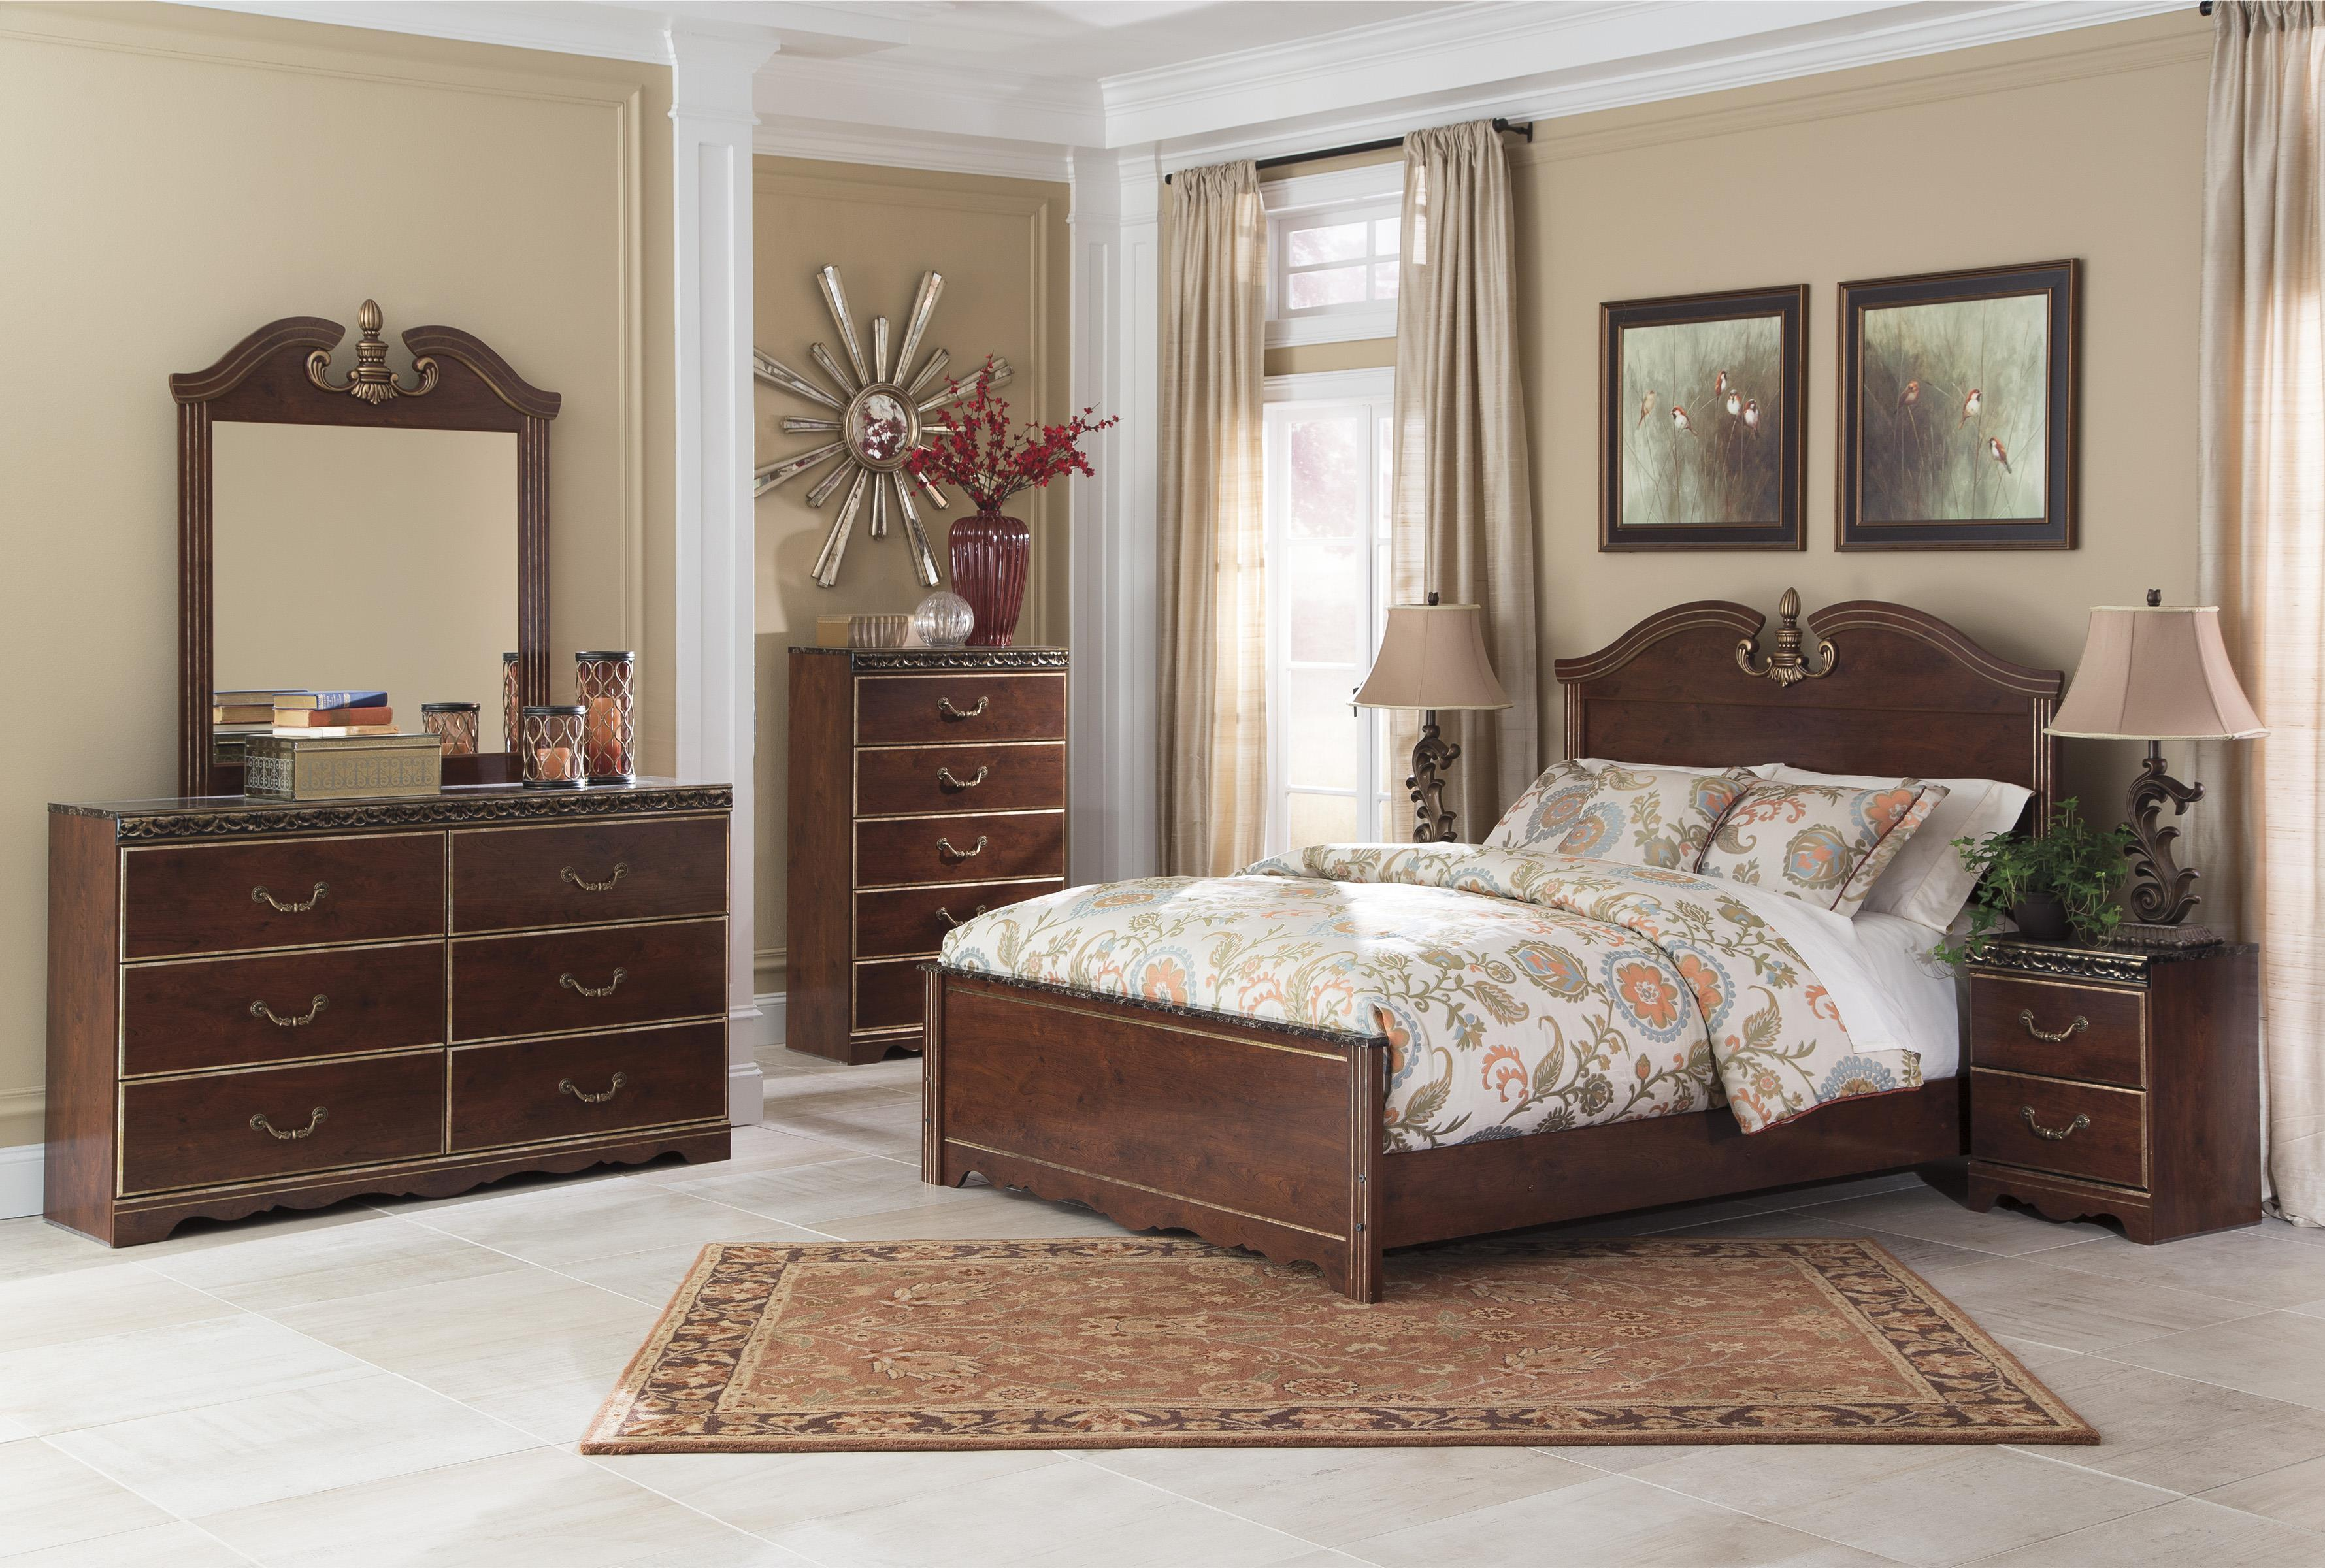 Signature Design by Ashley Naralyn Queen Bedroom Group - Item Number: B164 Q Bedroom Group 1